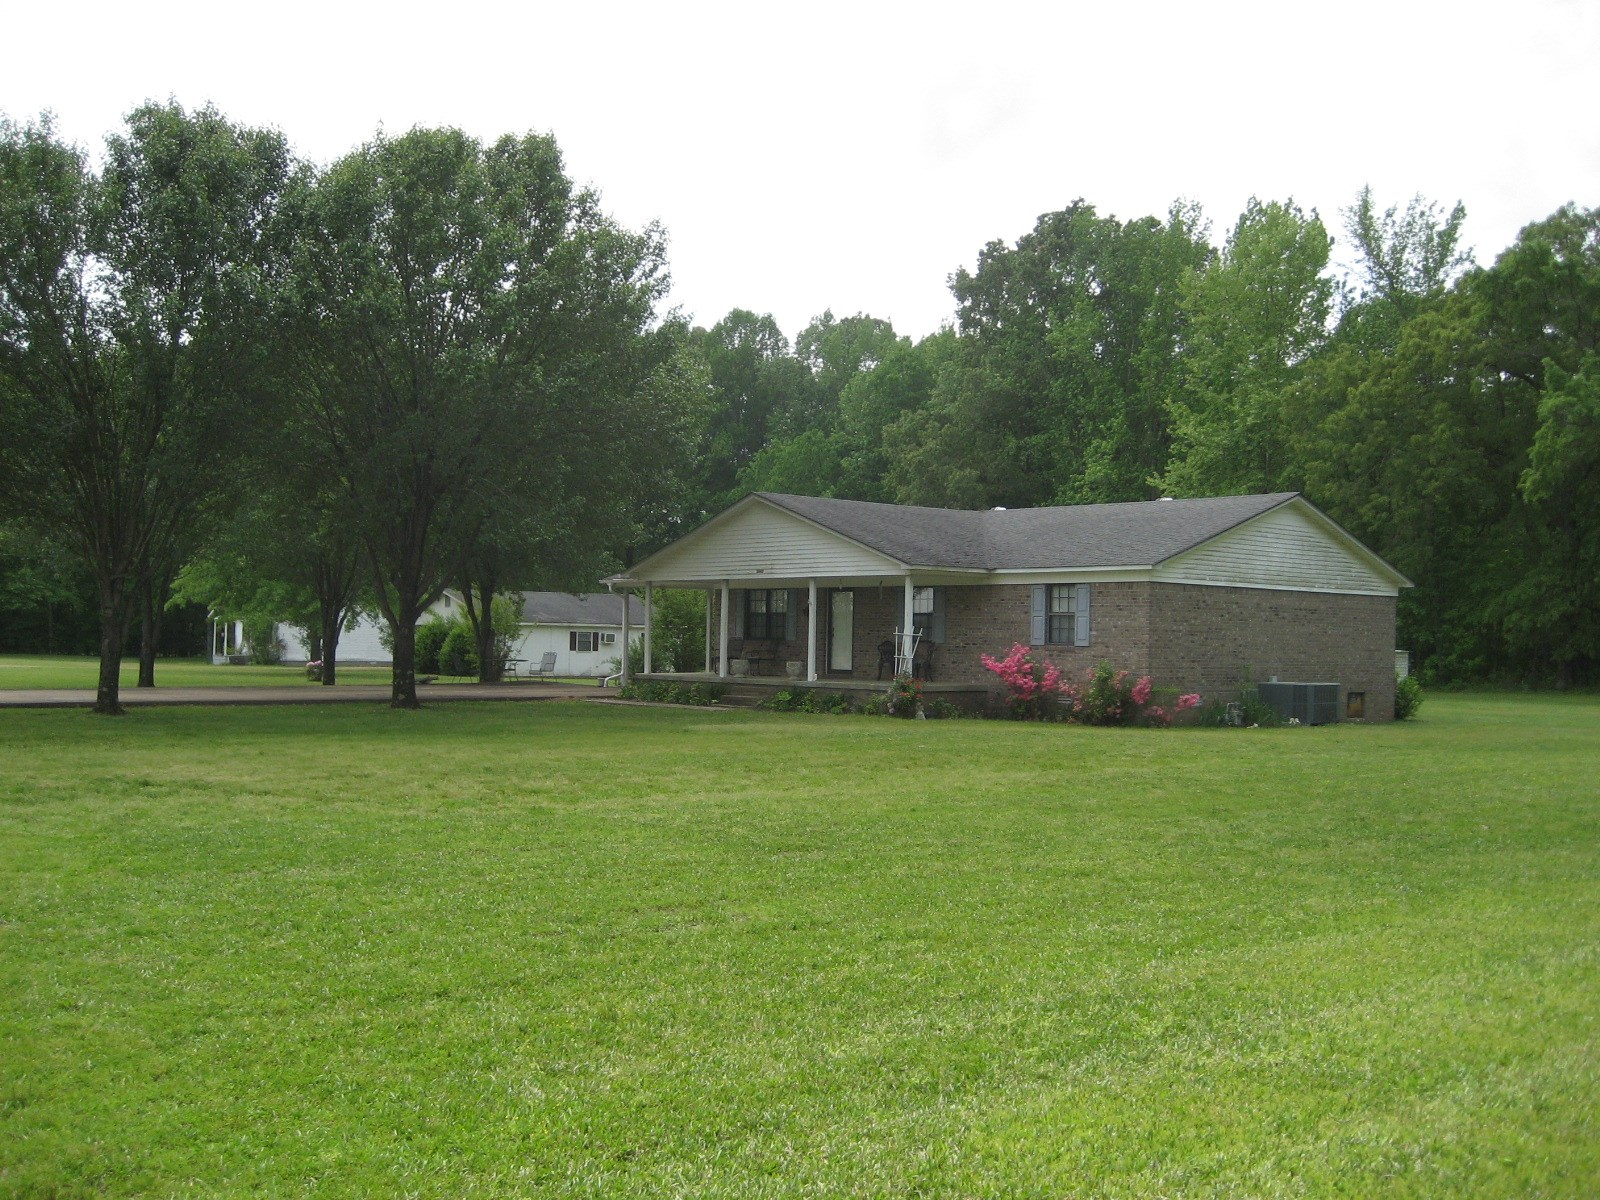 HOME FOR SALE IN ADAMSVILLE TN W/ 2 OTHER HOMES ON PROPERTY